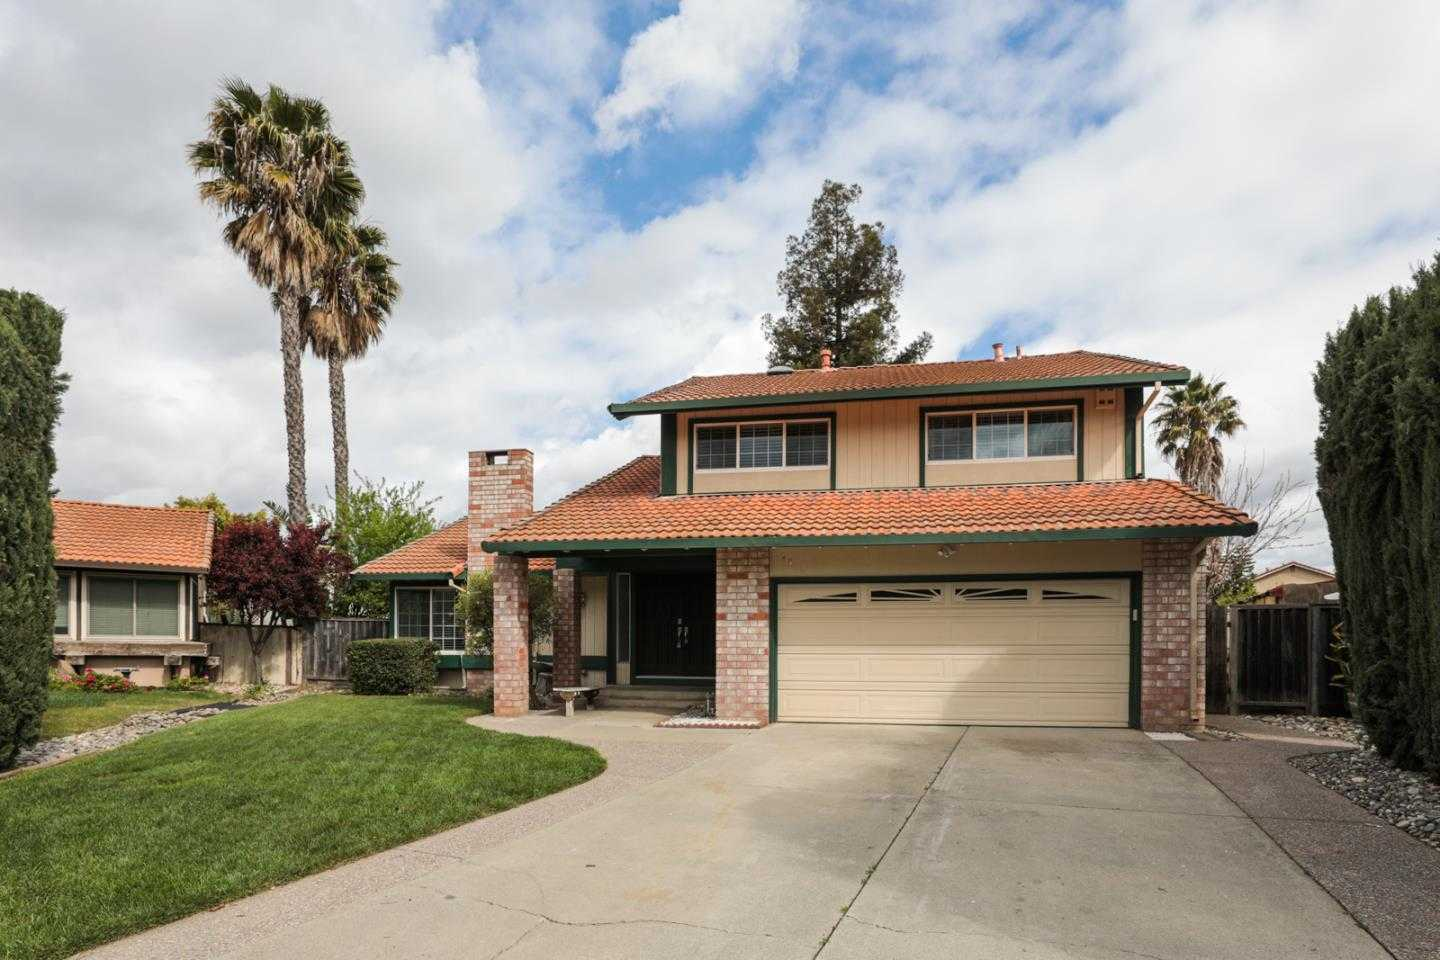 $1,099,000 - 3Br/3Ba -  for Sale in San Jose